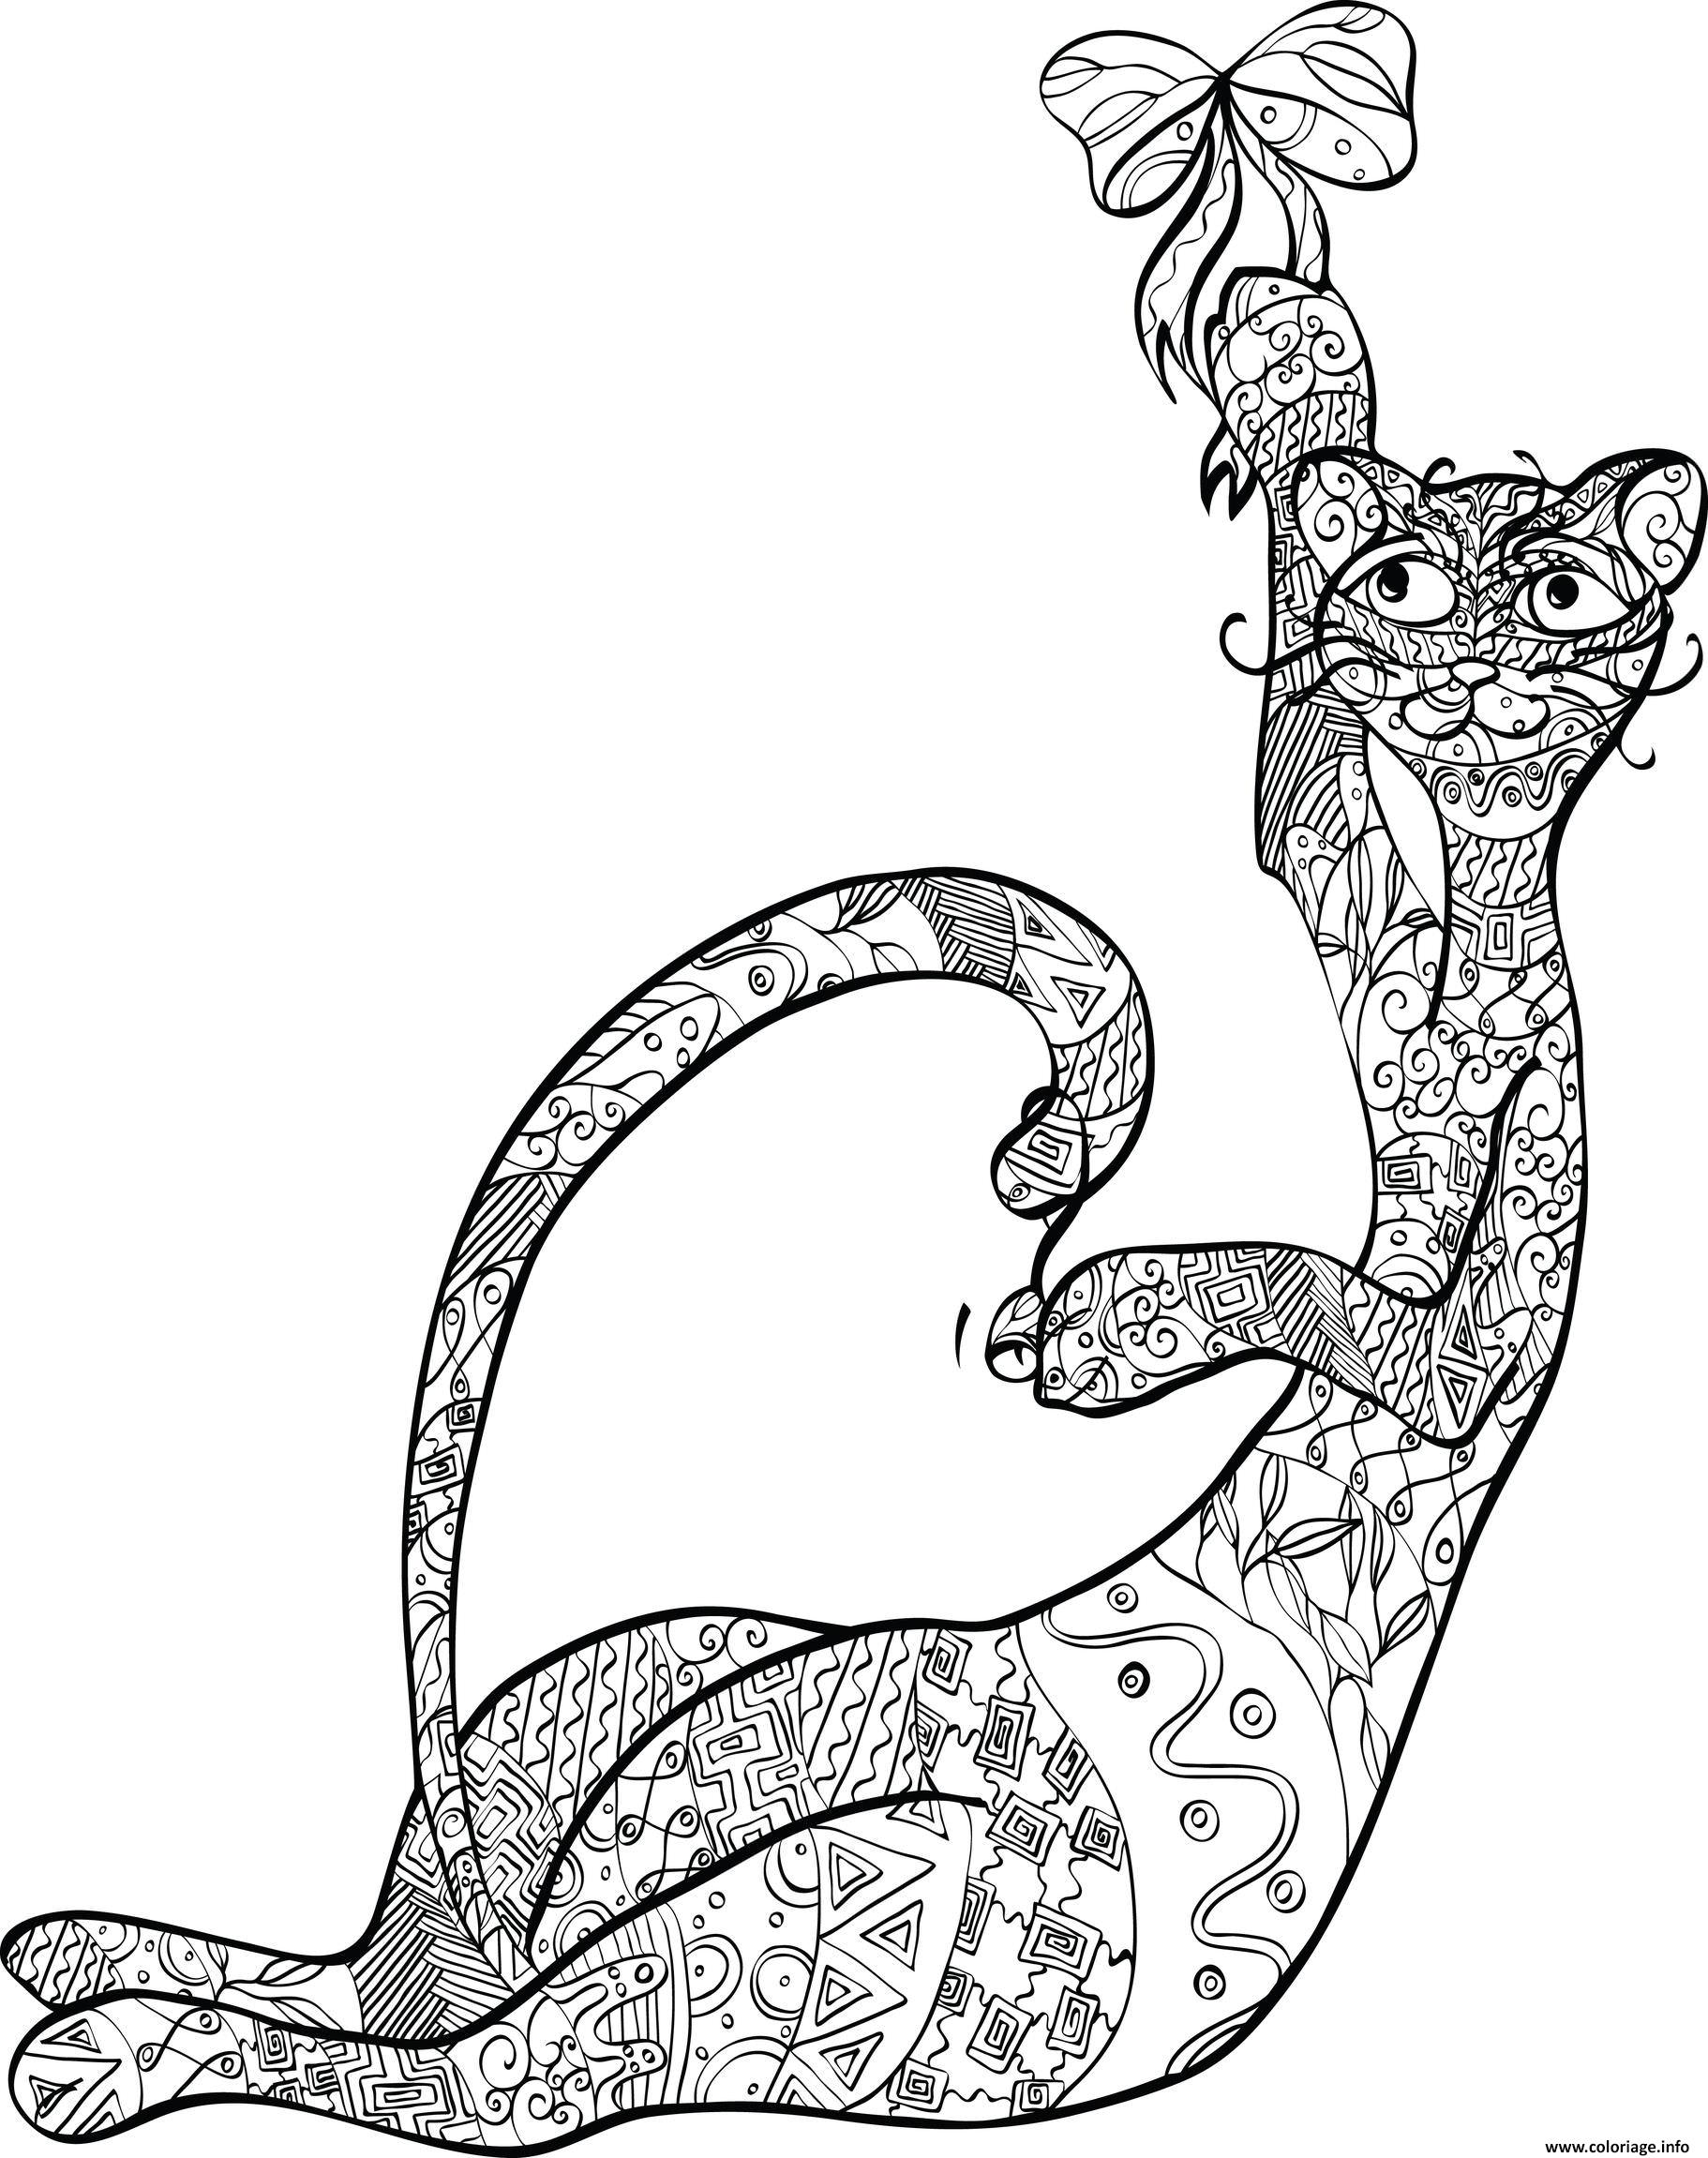 Coloriage Anti Stress Animaux A Imprimer Gratuit.Coloriage Adulte Anti Stress Animaux Chat Dessin